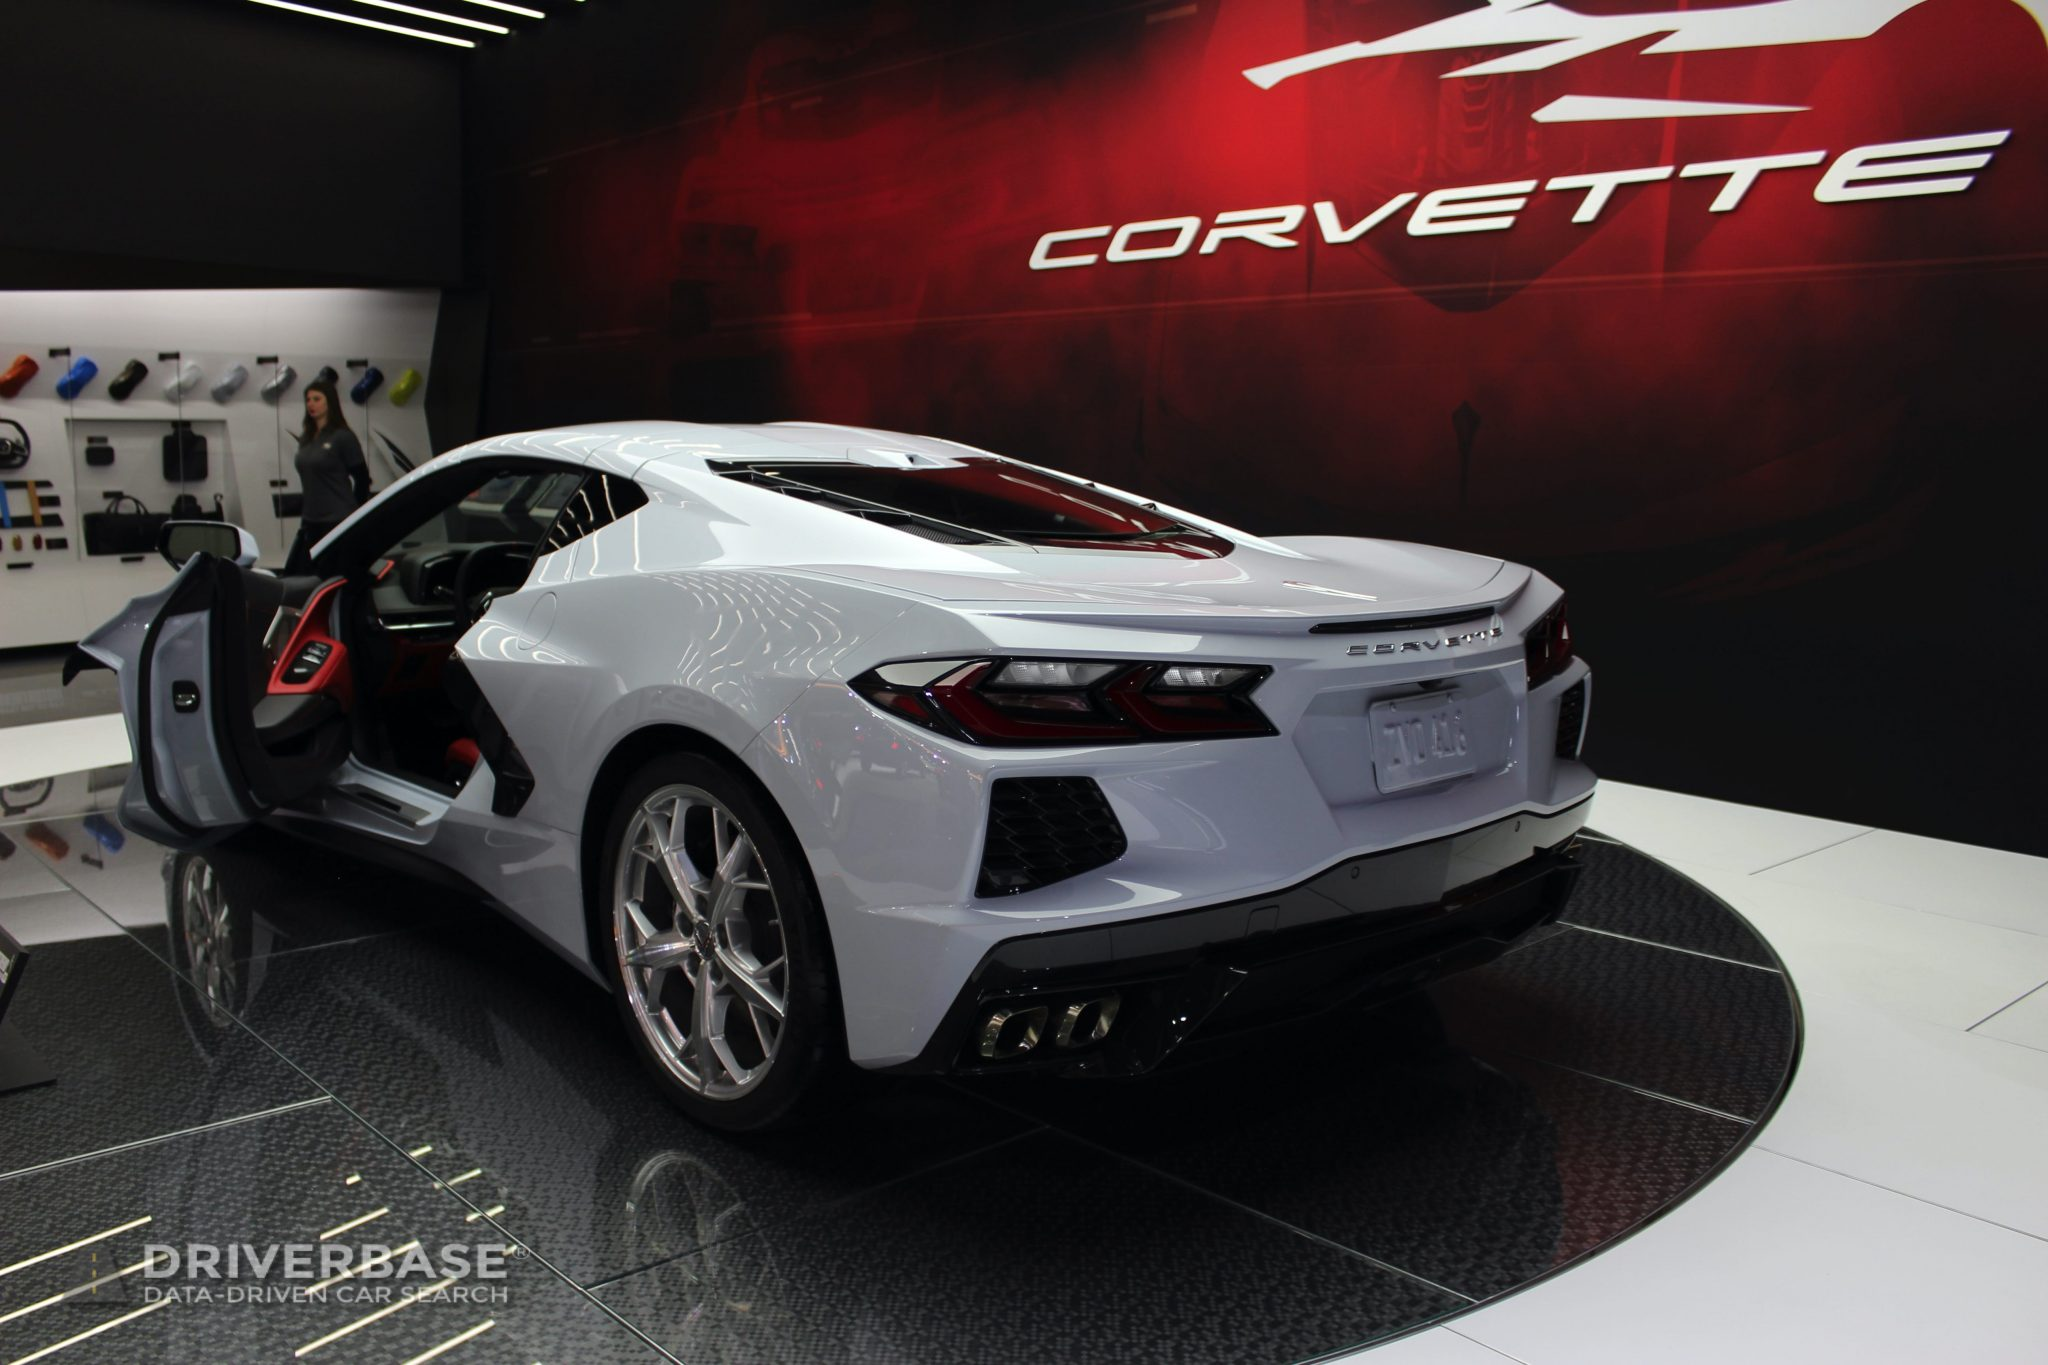 2020 Chevrolet Corvette Stingray at the 2019 Los Angeles Auto Show